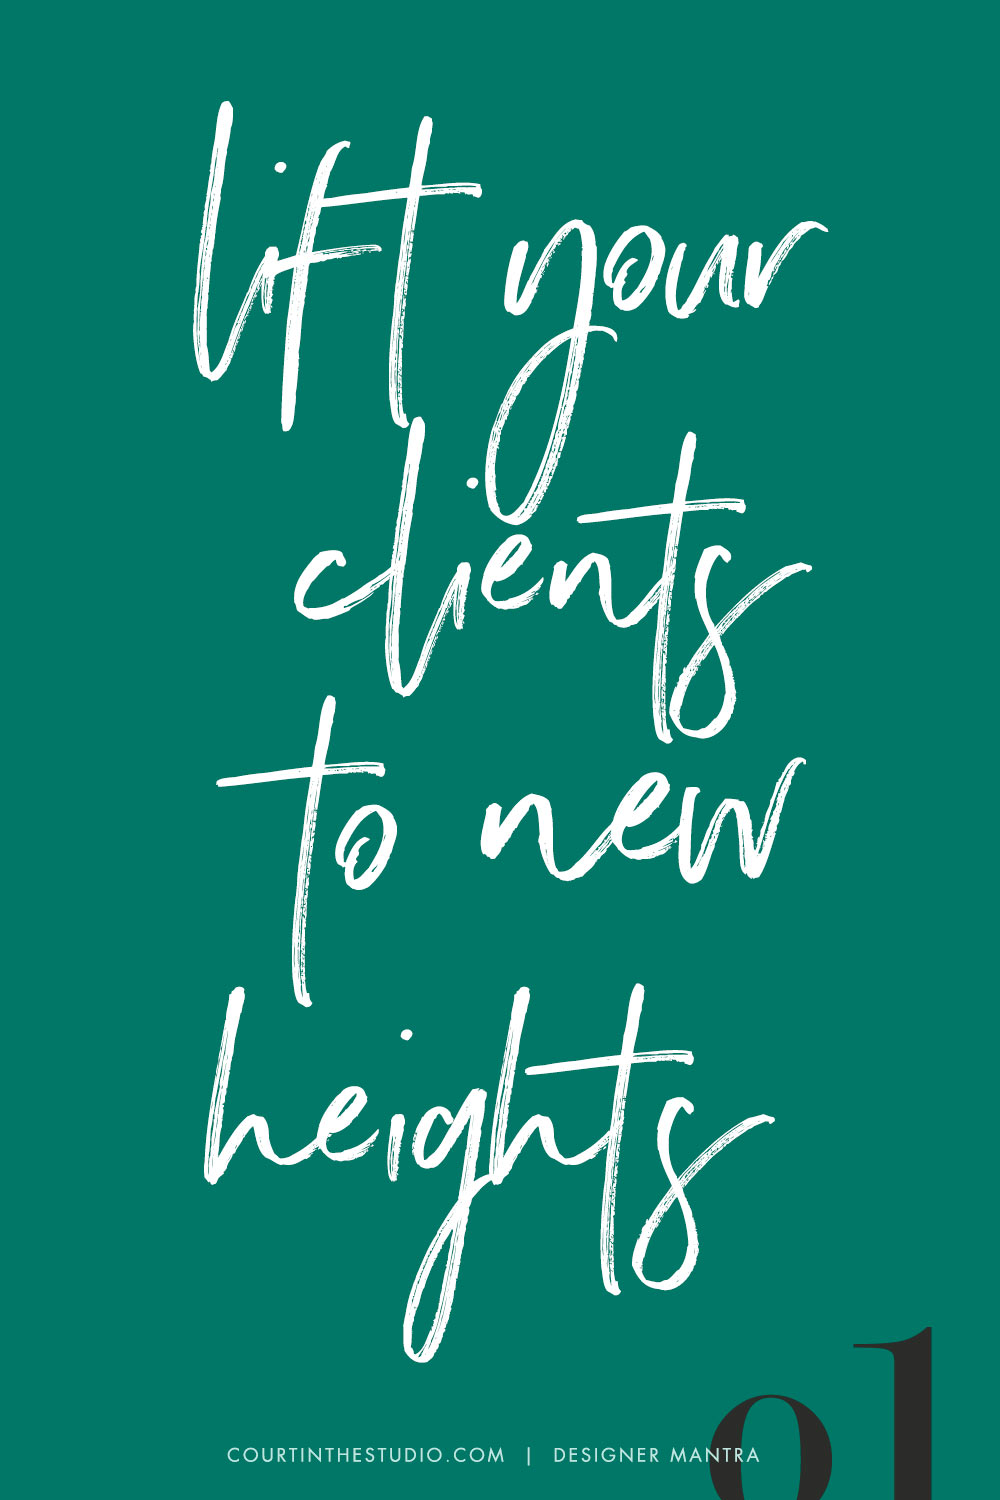 designer-mantra-new-heights.jpg